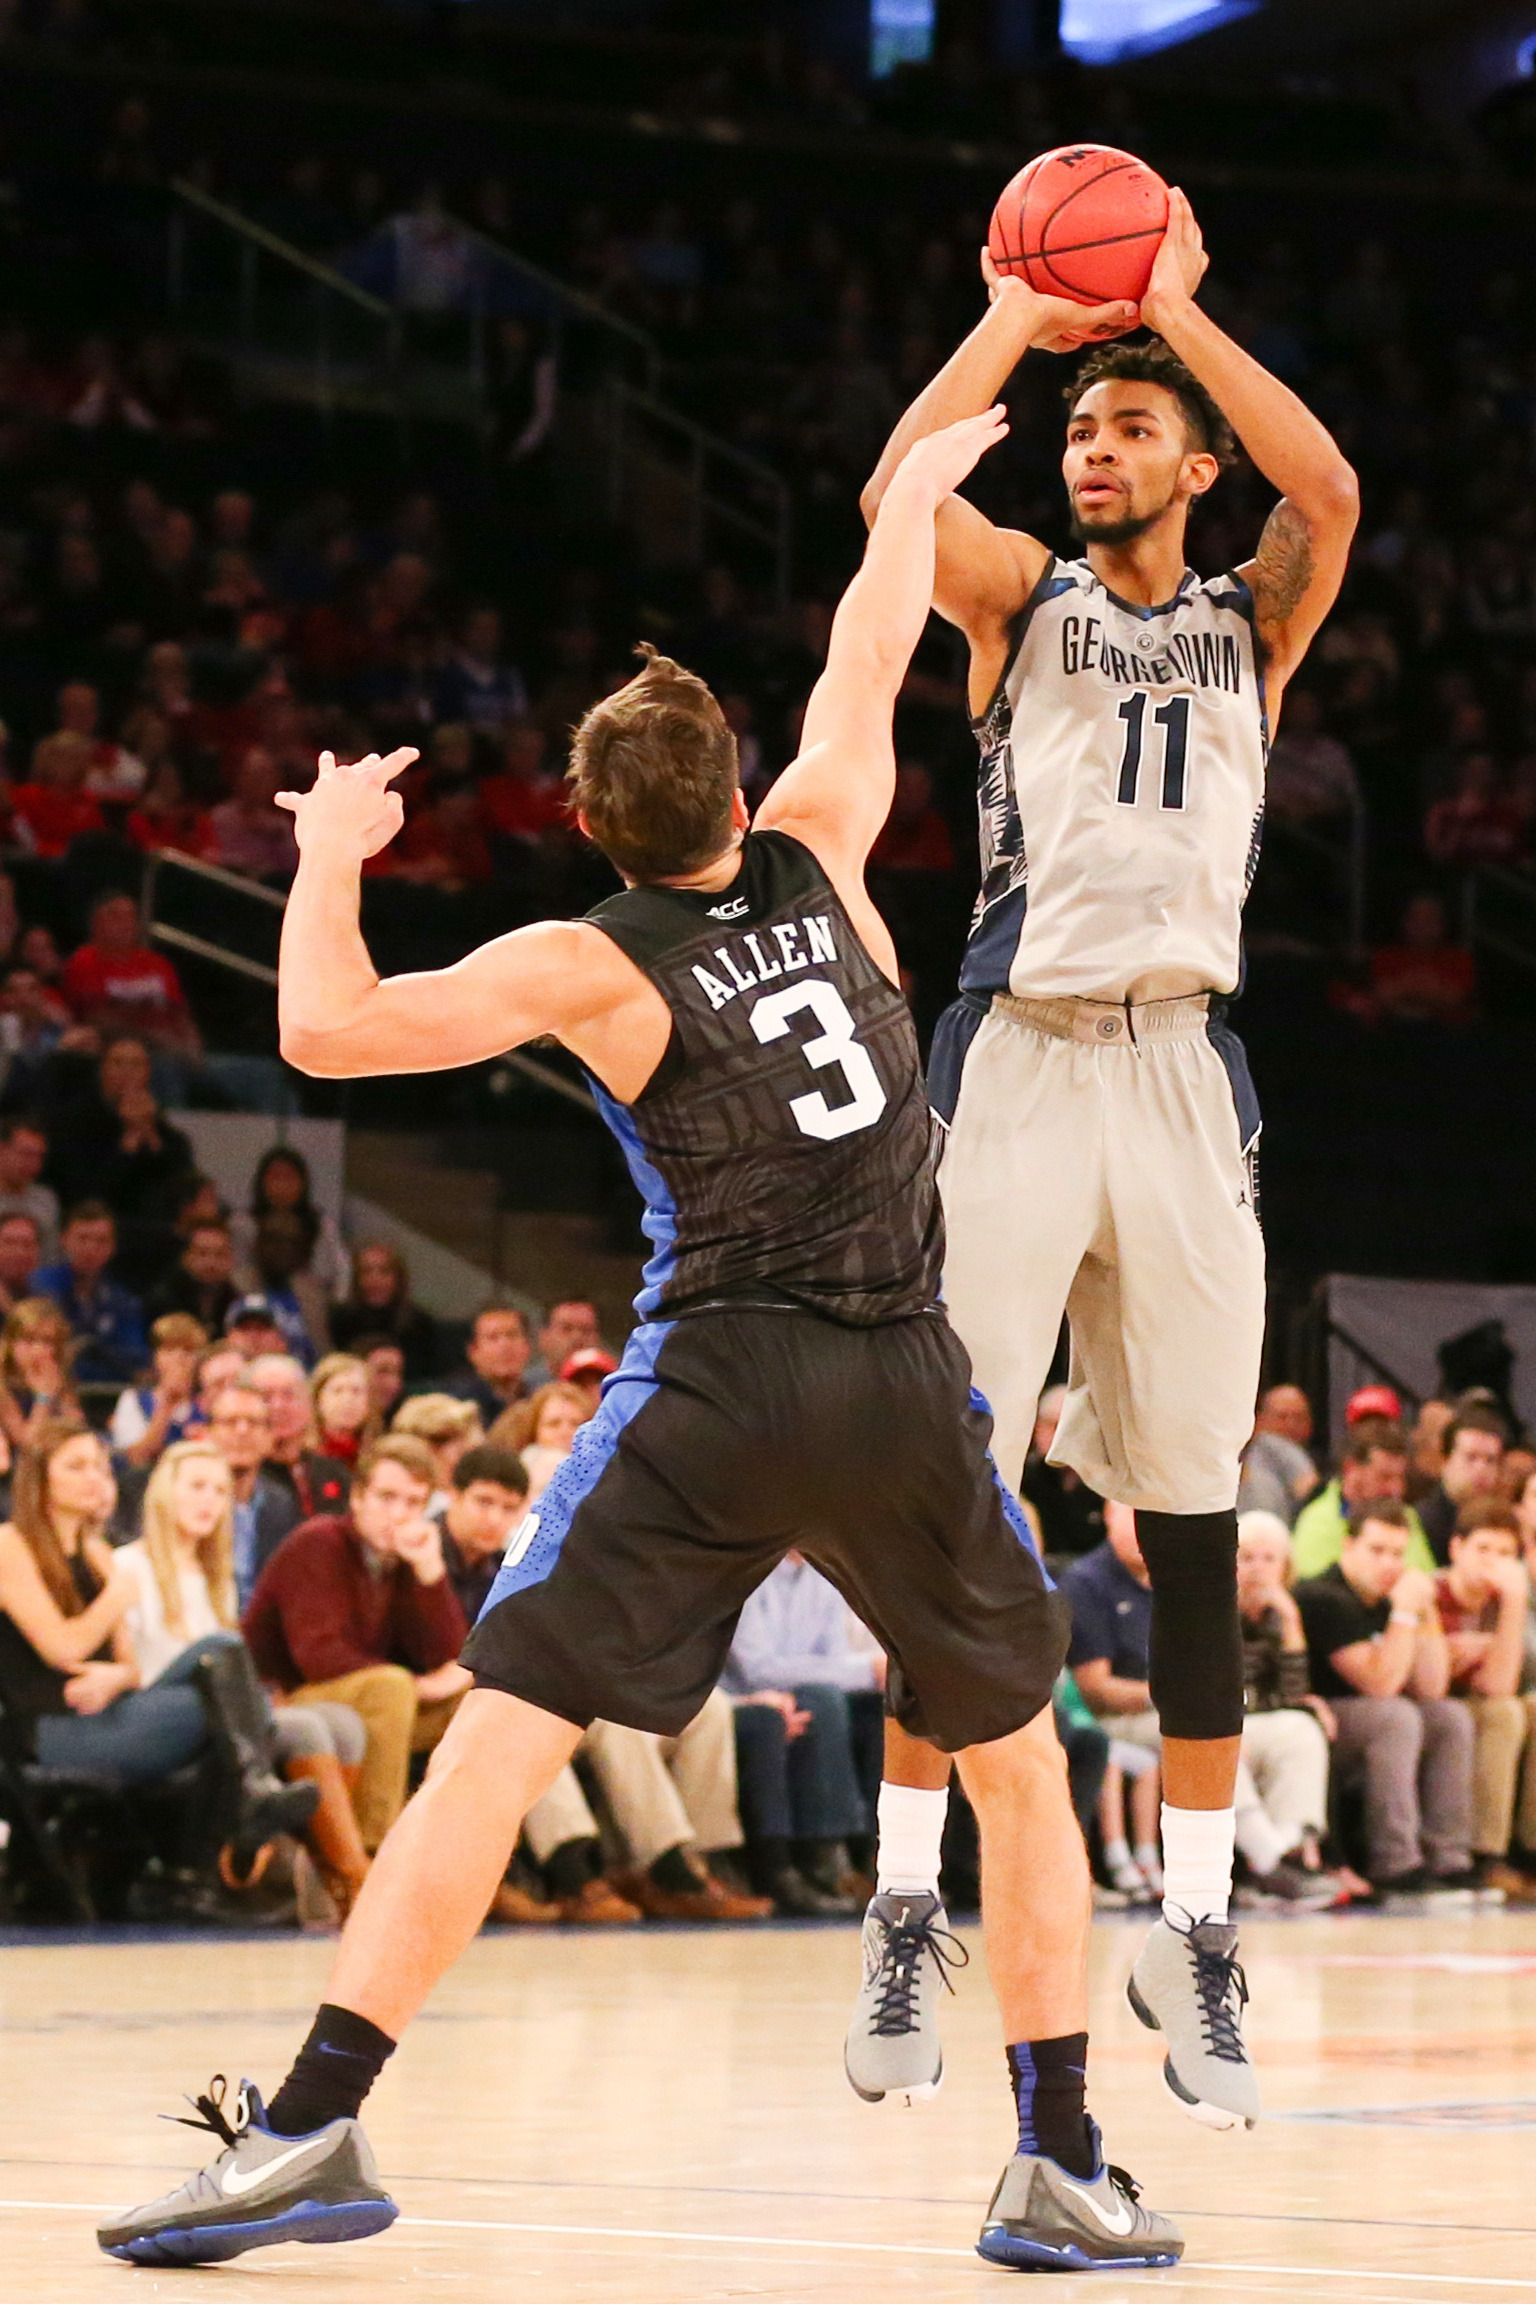 Georgetown rallied from a nine-point deficit to pull within one point and had a jumper from sophomore forward Isaac Copeland (Raleigh, N.C./Brewster Academy [N.H.]) fall just short at the buzzer as the Hoyas lost to No. 5 Duke, 86-84, in the championship game of the 2K Classic at Madison Square Gardeh Sunday afternoon.